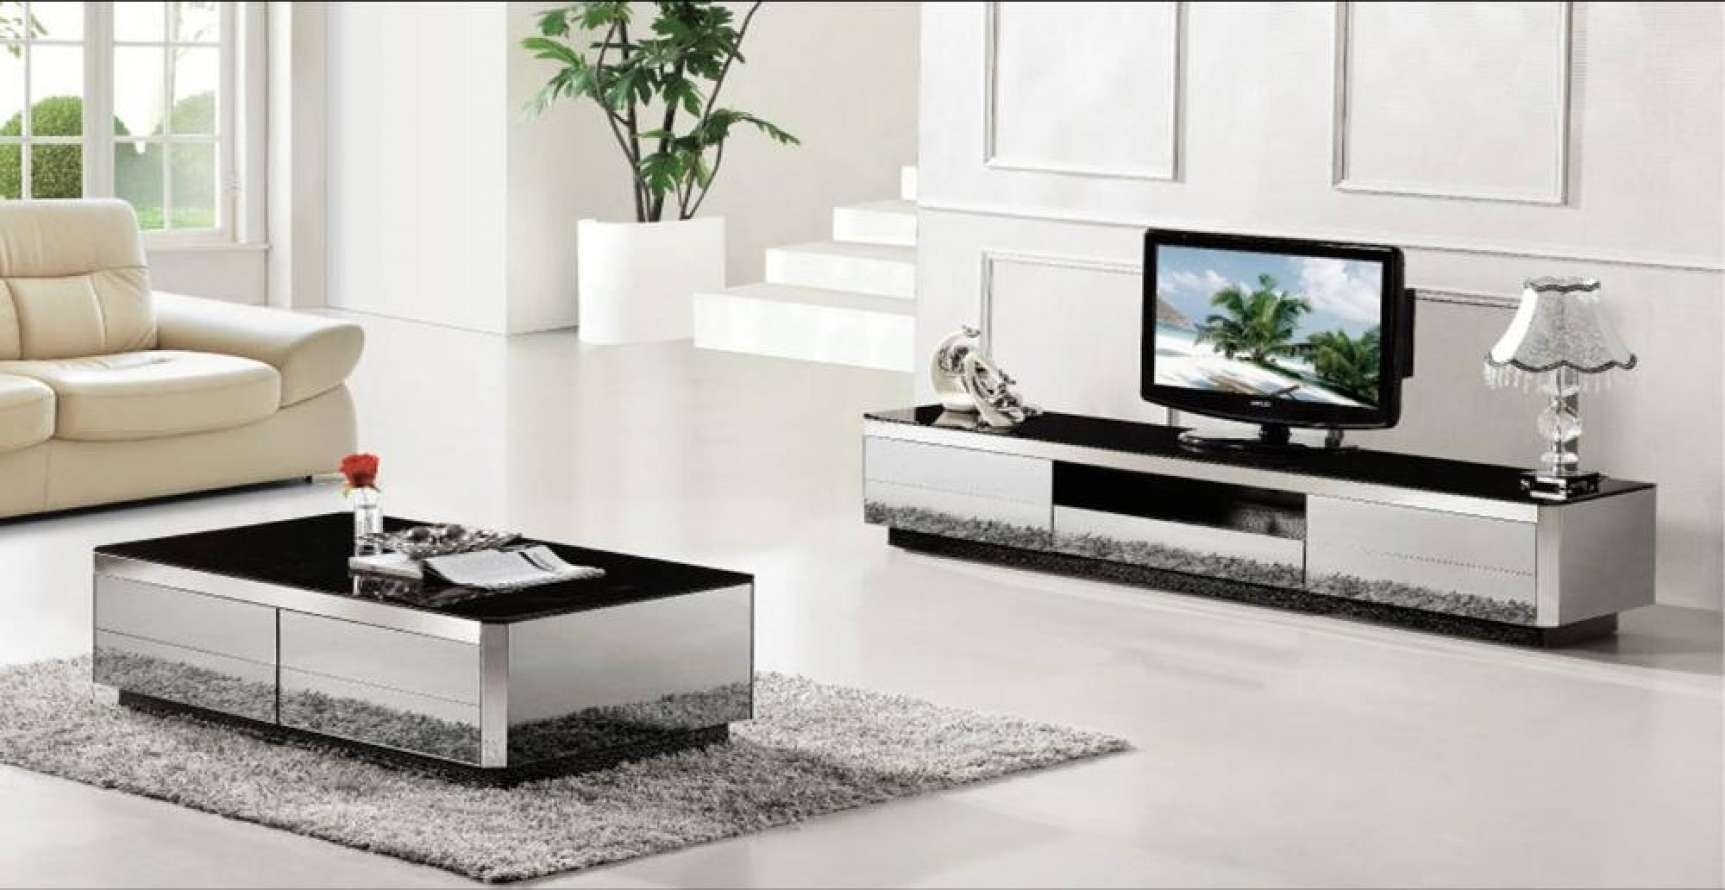 Coffee Table : Marvelous Coffee Table And Tv Stand Set Photos Intended For Coffee Tables And Tv Stands Matching (View 5 of 20)